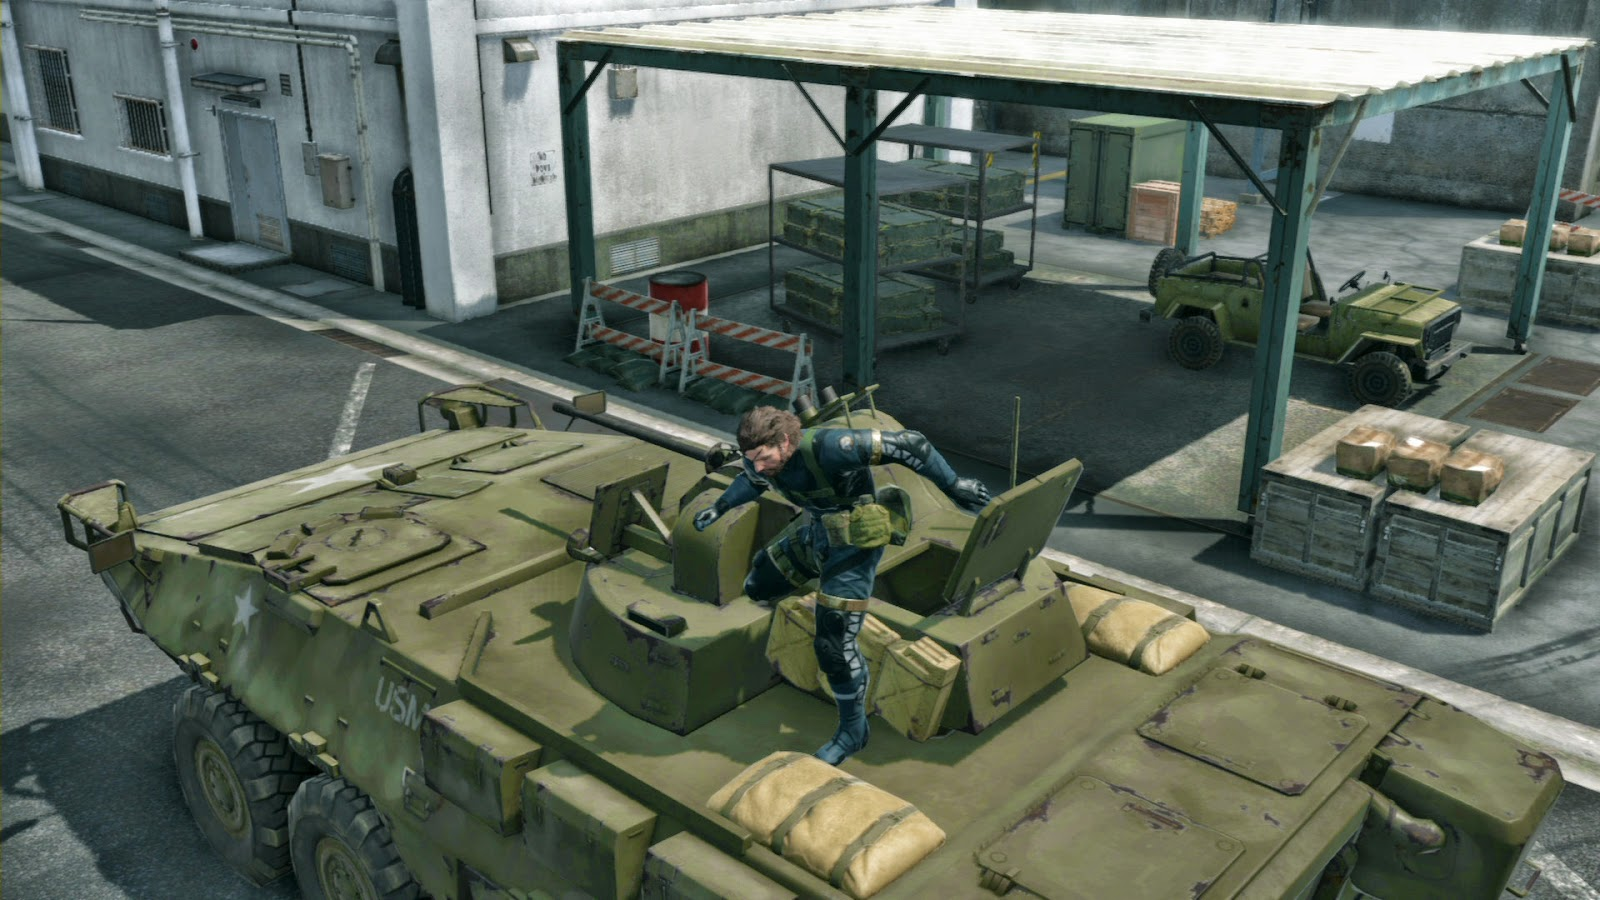 Game Metal Gear Solid V: Ground Zeroes Full Crack CODEX Screenshot by www.jembercyber.blogspot.com